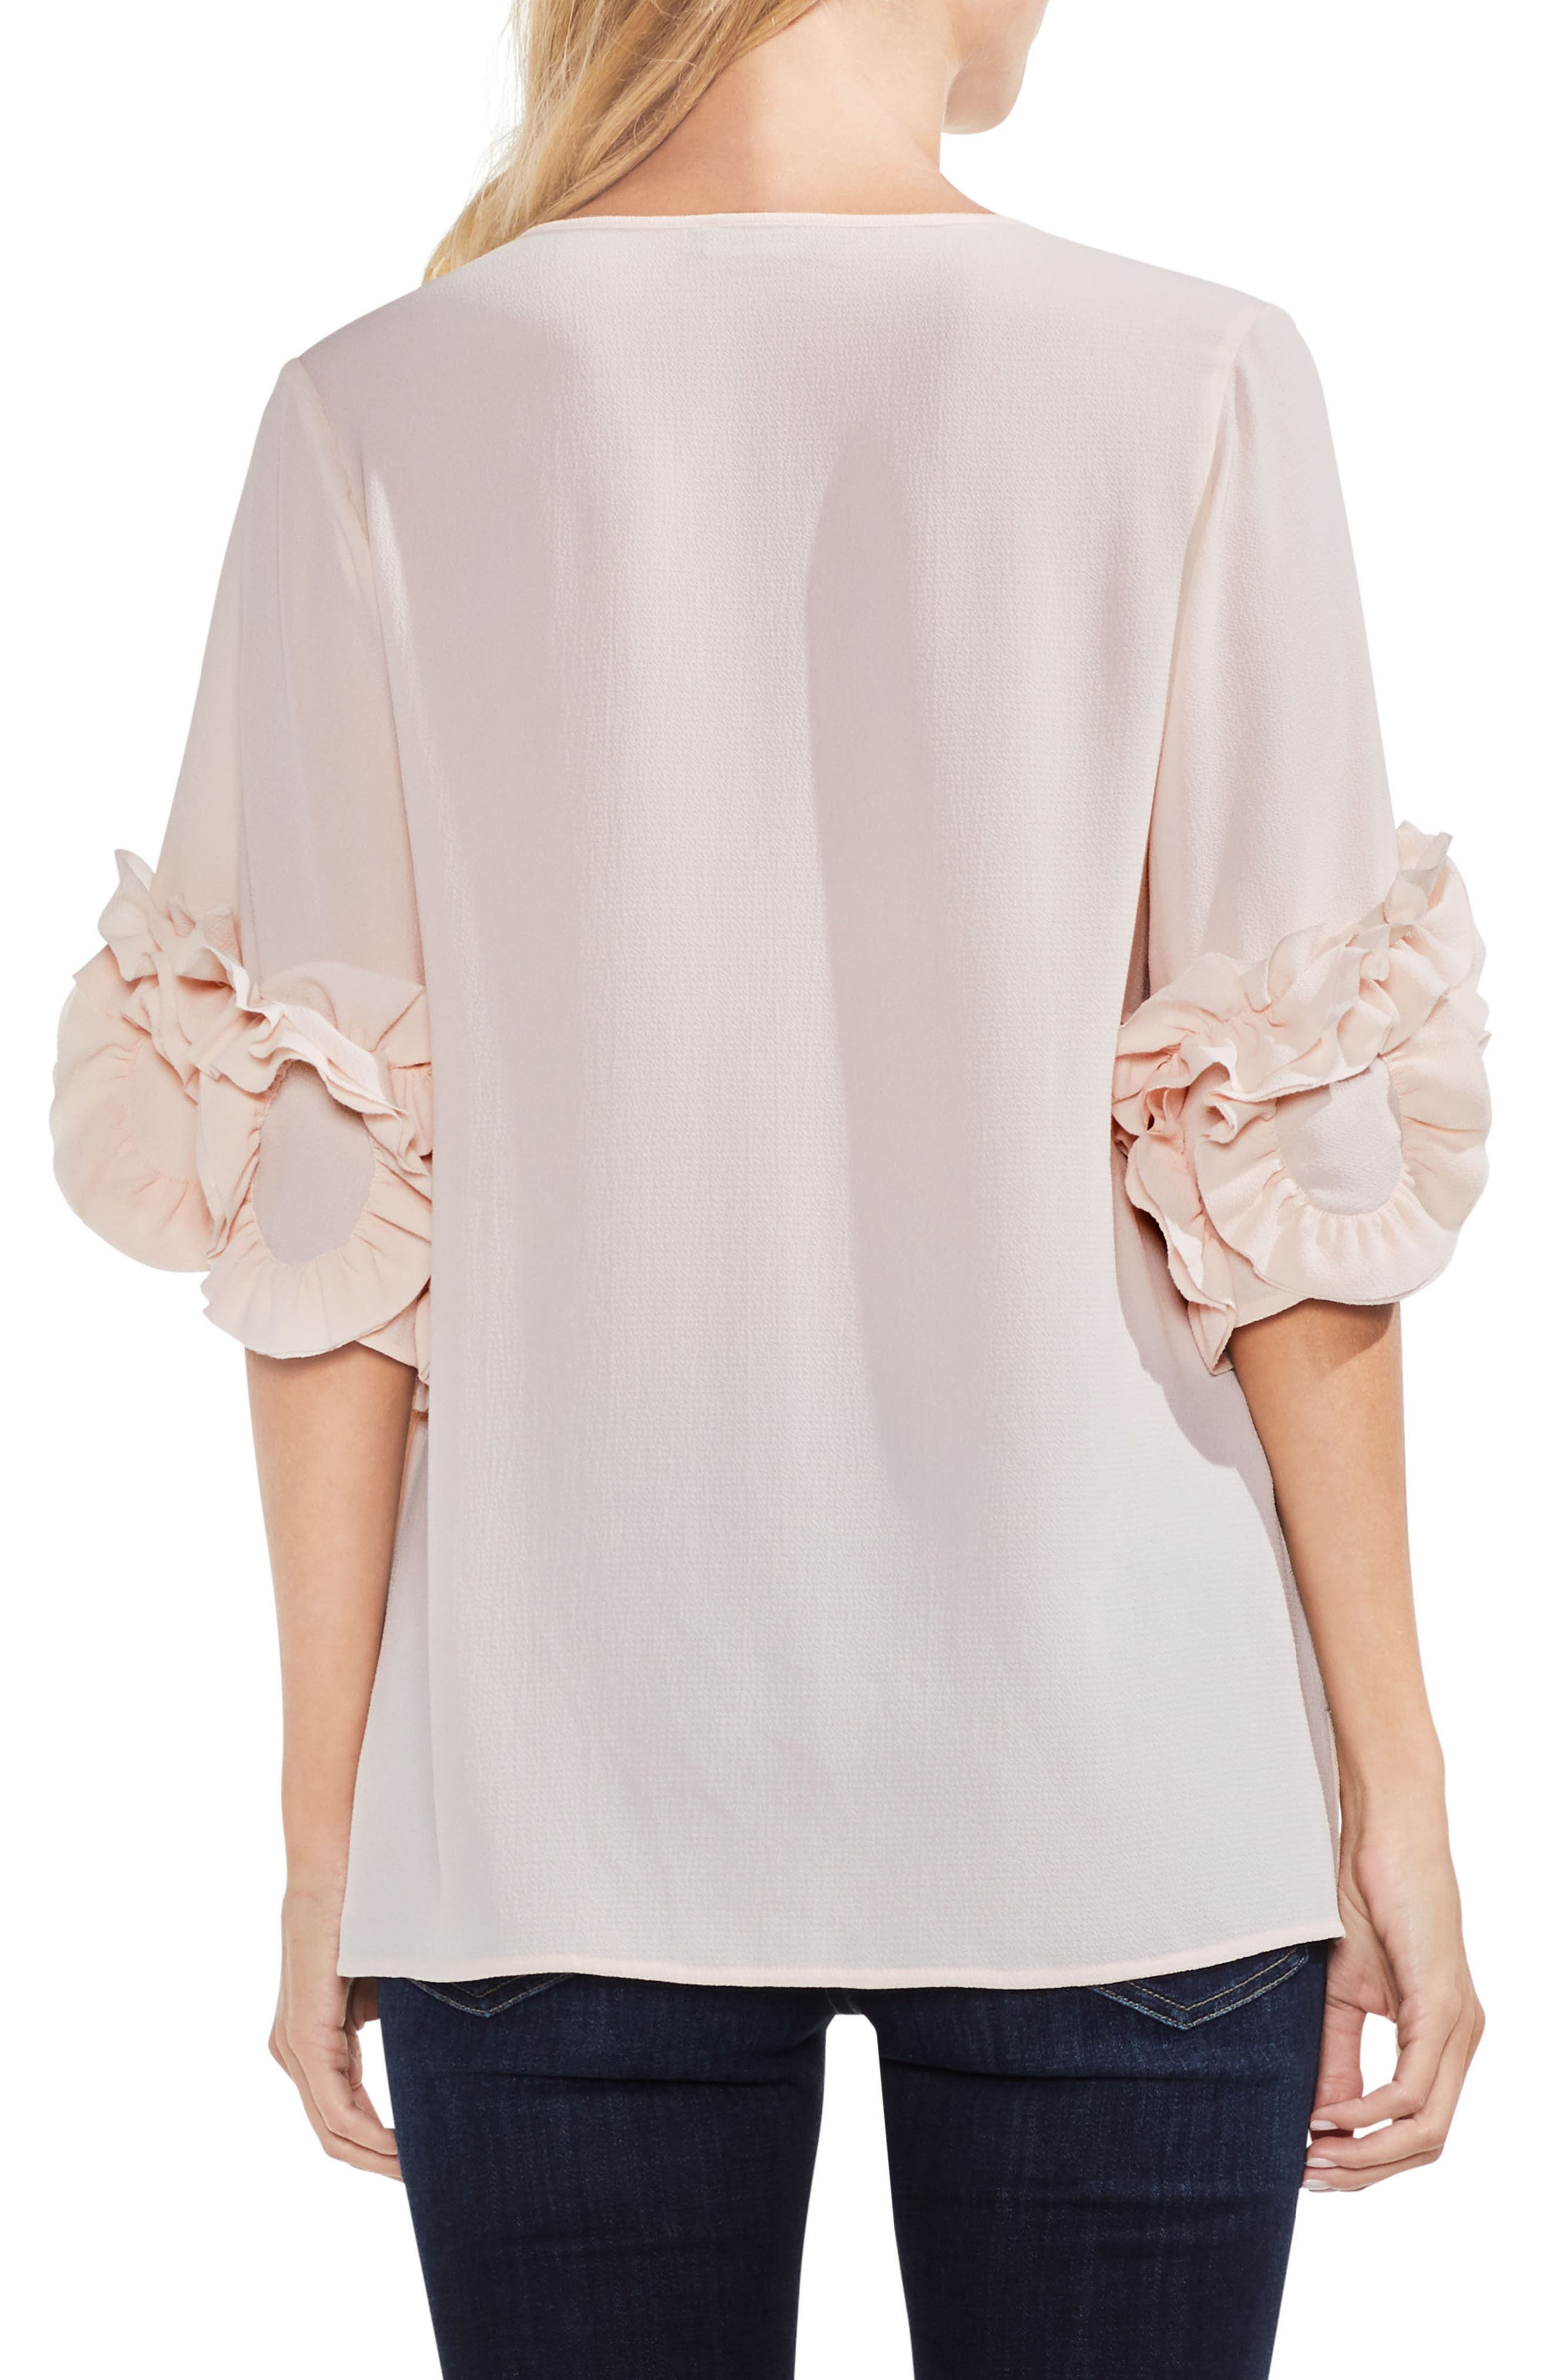 Ruffle Sleeve Tie Neck Blouse,                             Alternate thumbnail 2, color,                             Pink Mist